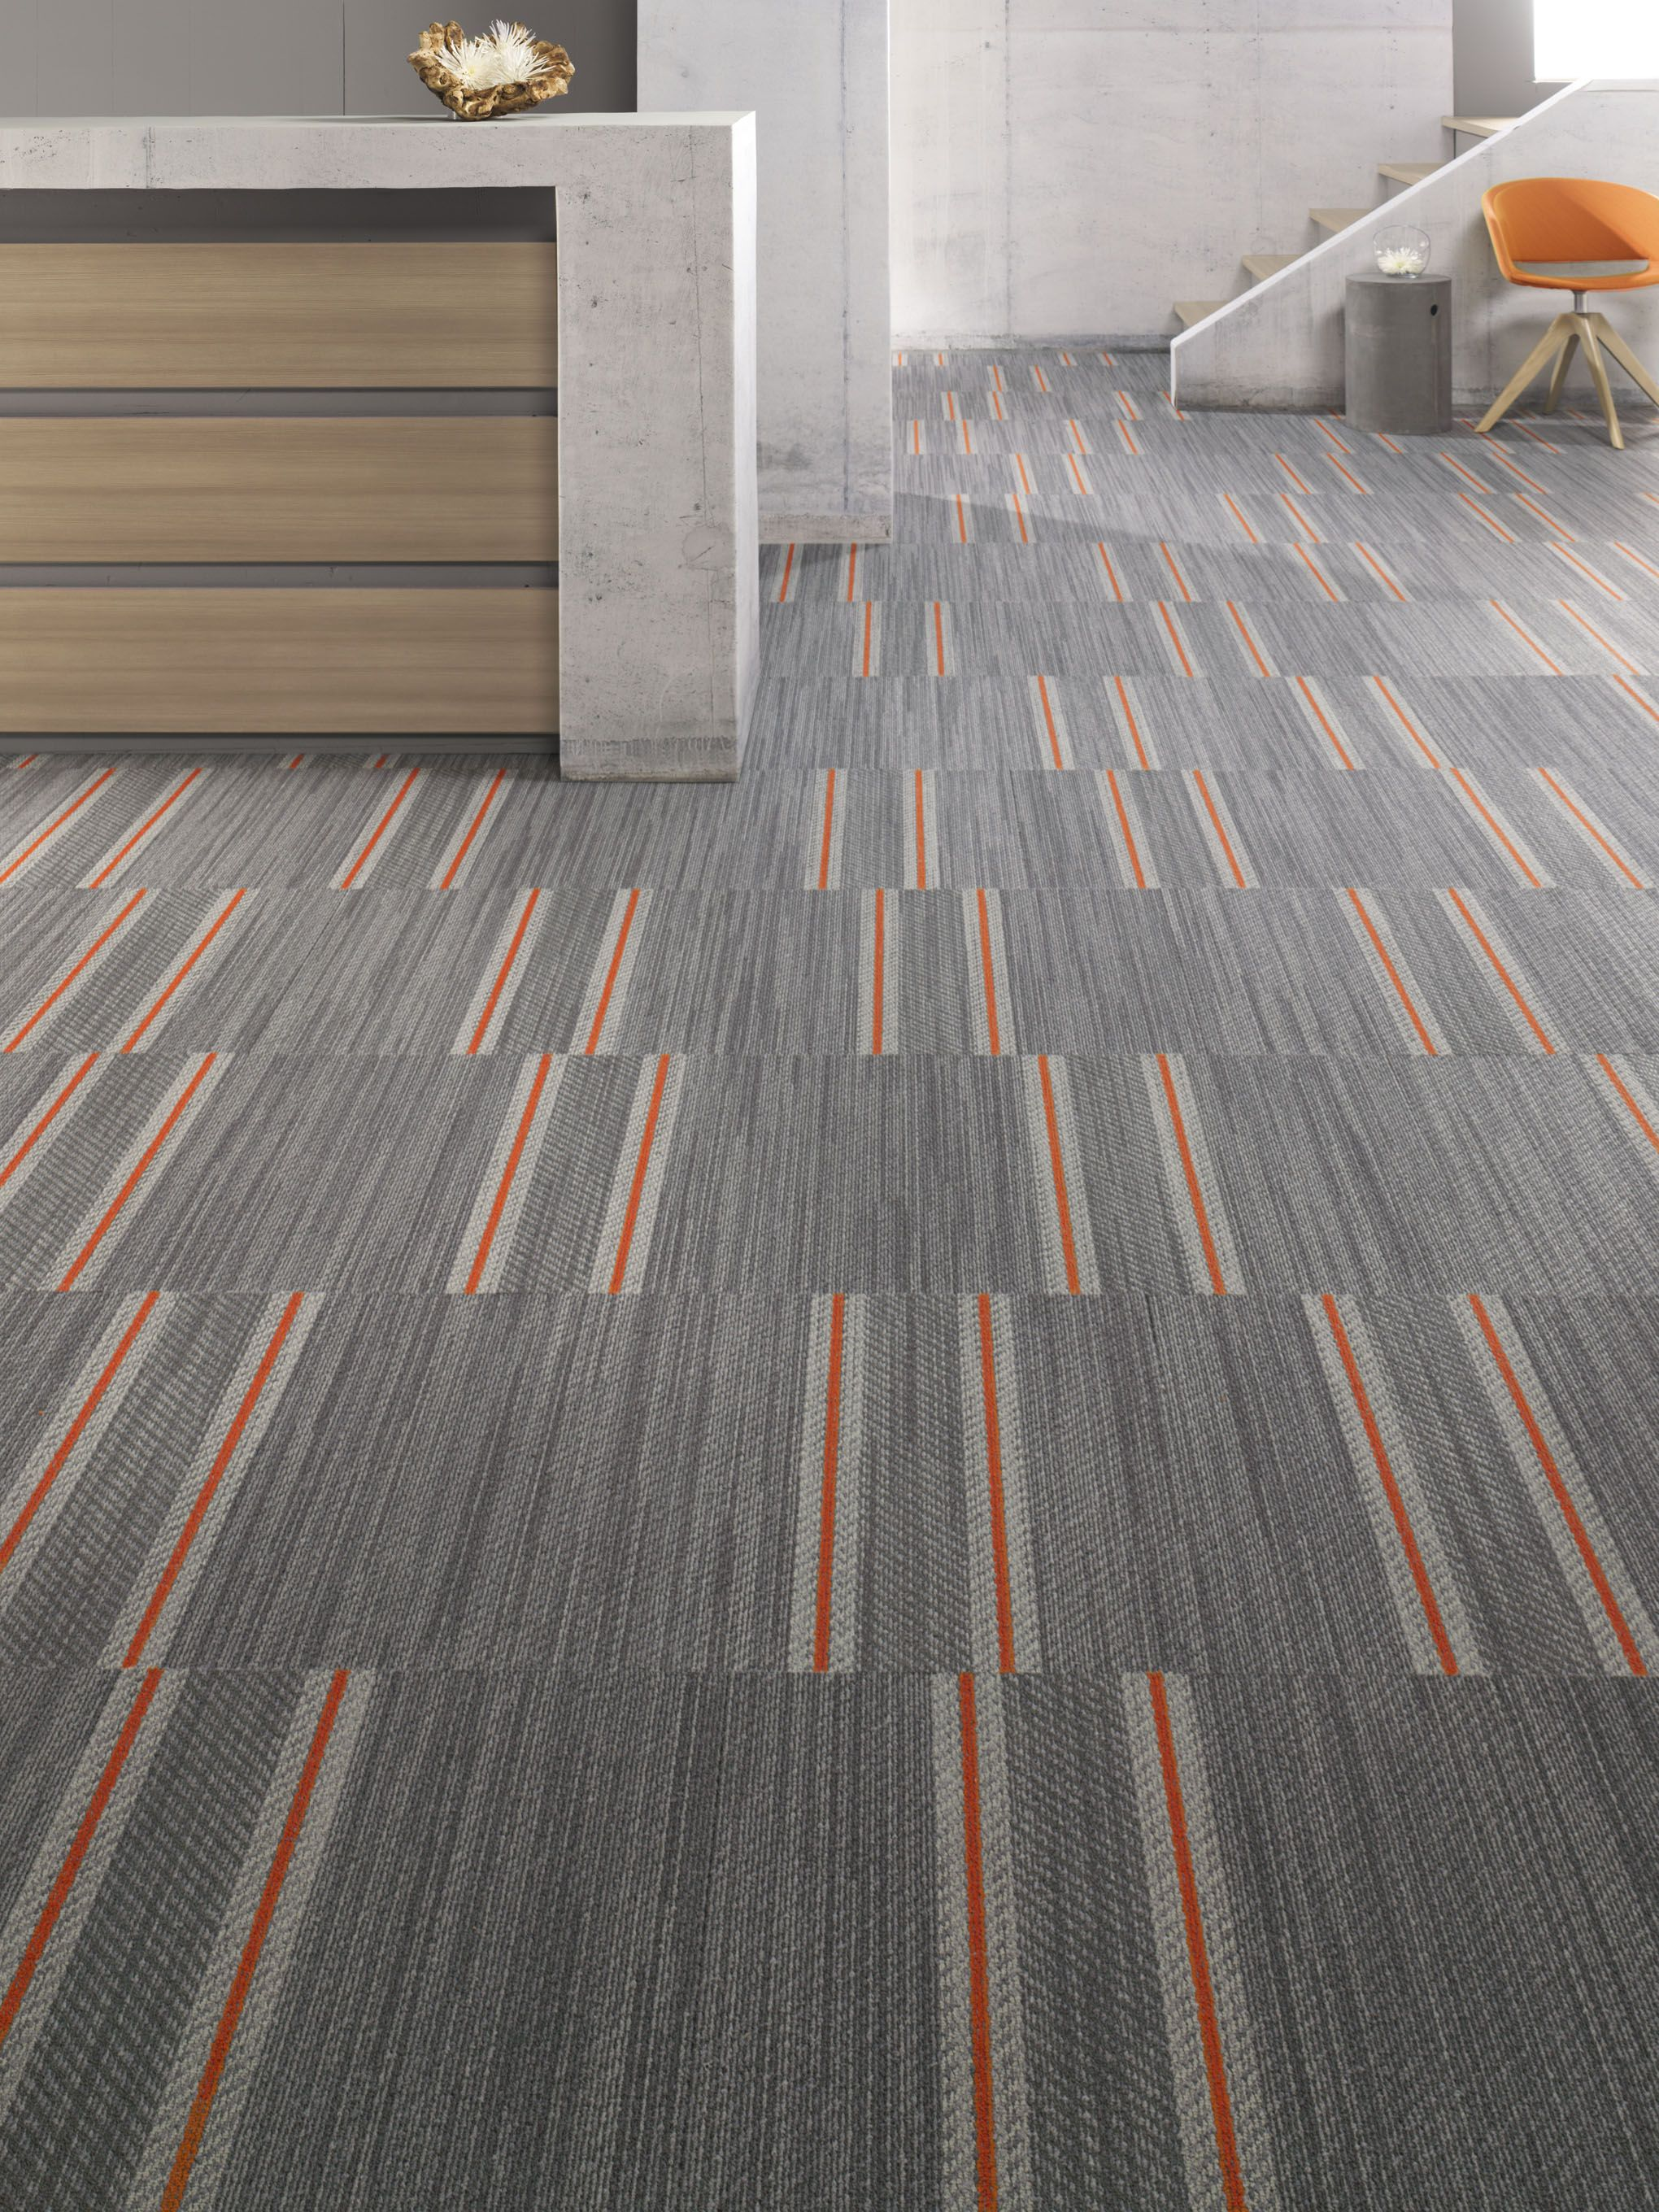 carpet tile patterns mohawk carpet tile: #denimu0027s pattern selvedge installed in ashlar.  #flooring #carpet #interiordesign TJOCIGL